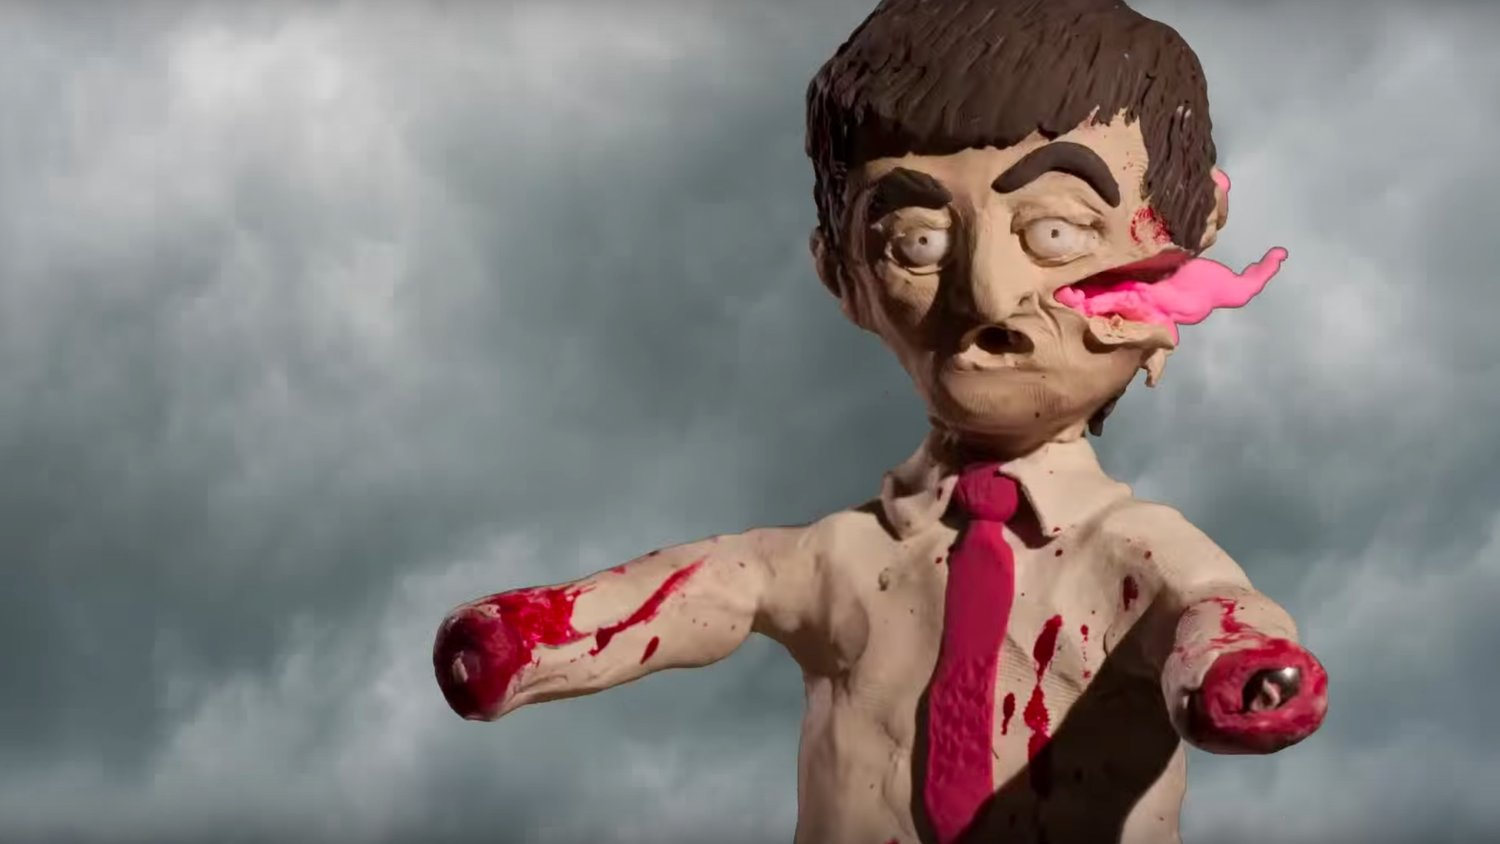 3 New Twisted and Jacked-Up Claymation Shorts for THE BELKO EXPERIMENT